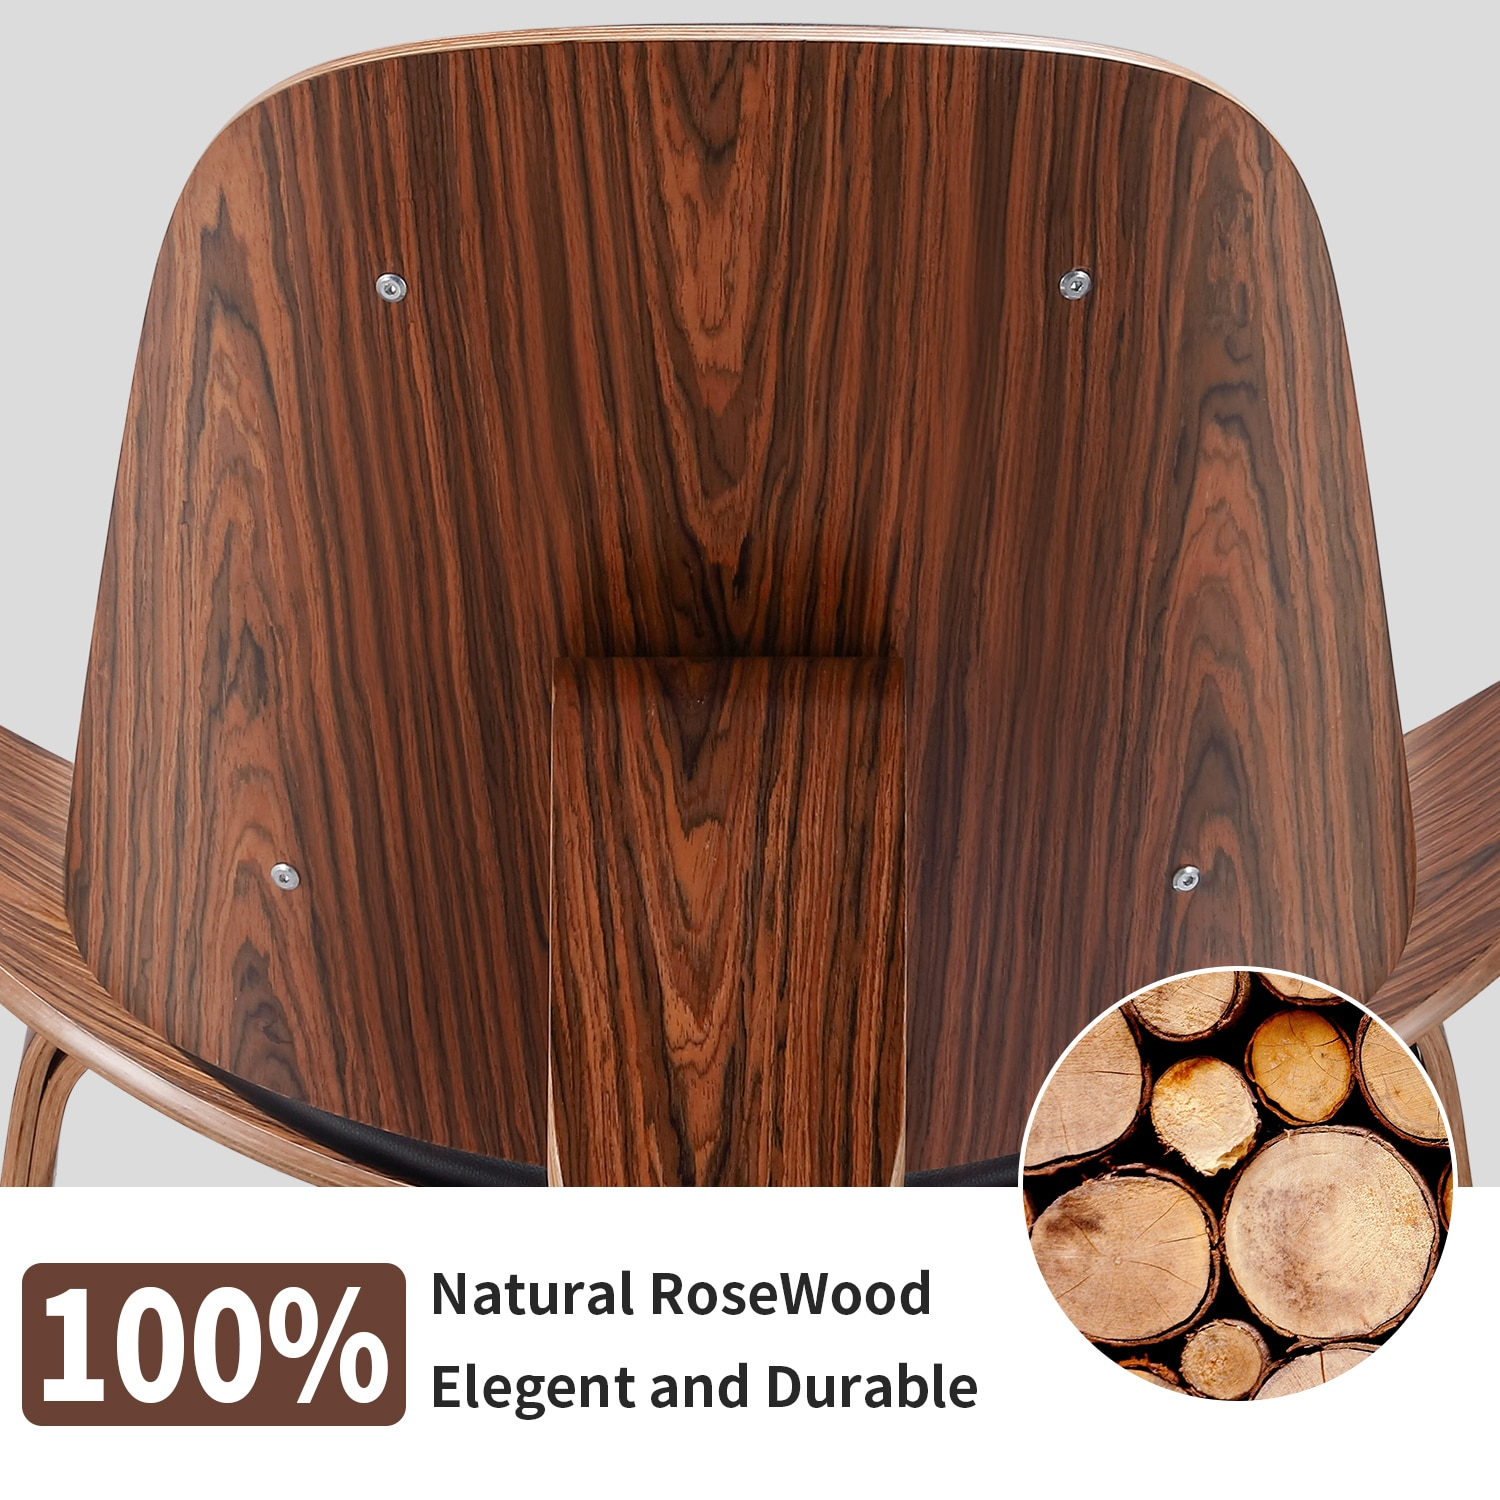 H6de9a9400be7488b986778bfc69f6dbcm - Design Furniture Bentwood Chair Hands Wegner Replica Lounge Chair with PU Leather Seat Comfort Cushion Coffee Chair Office Chair